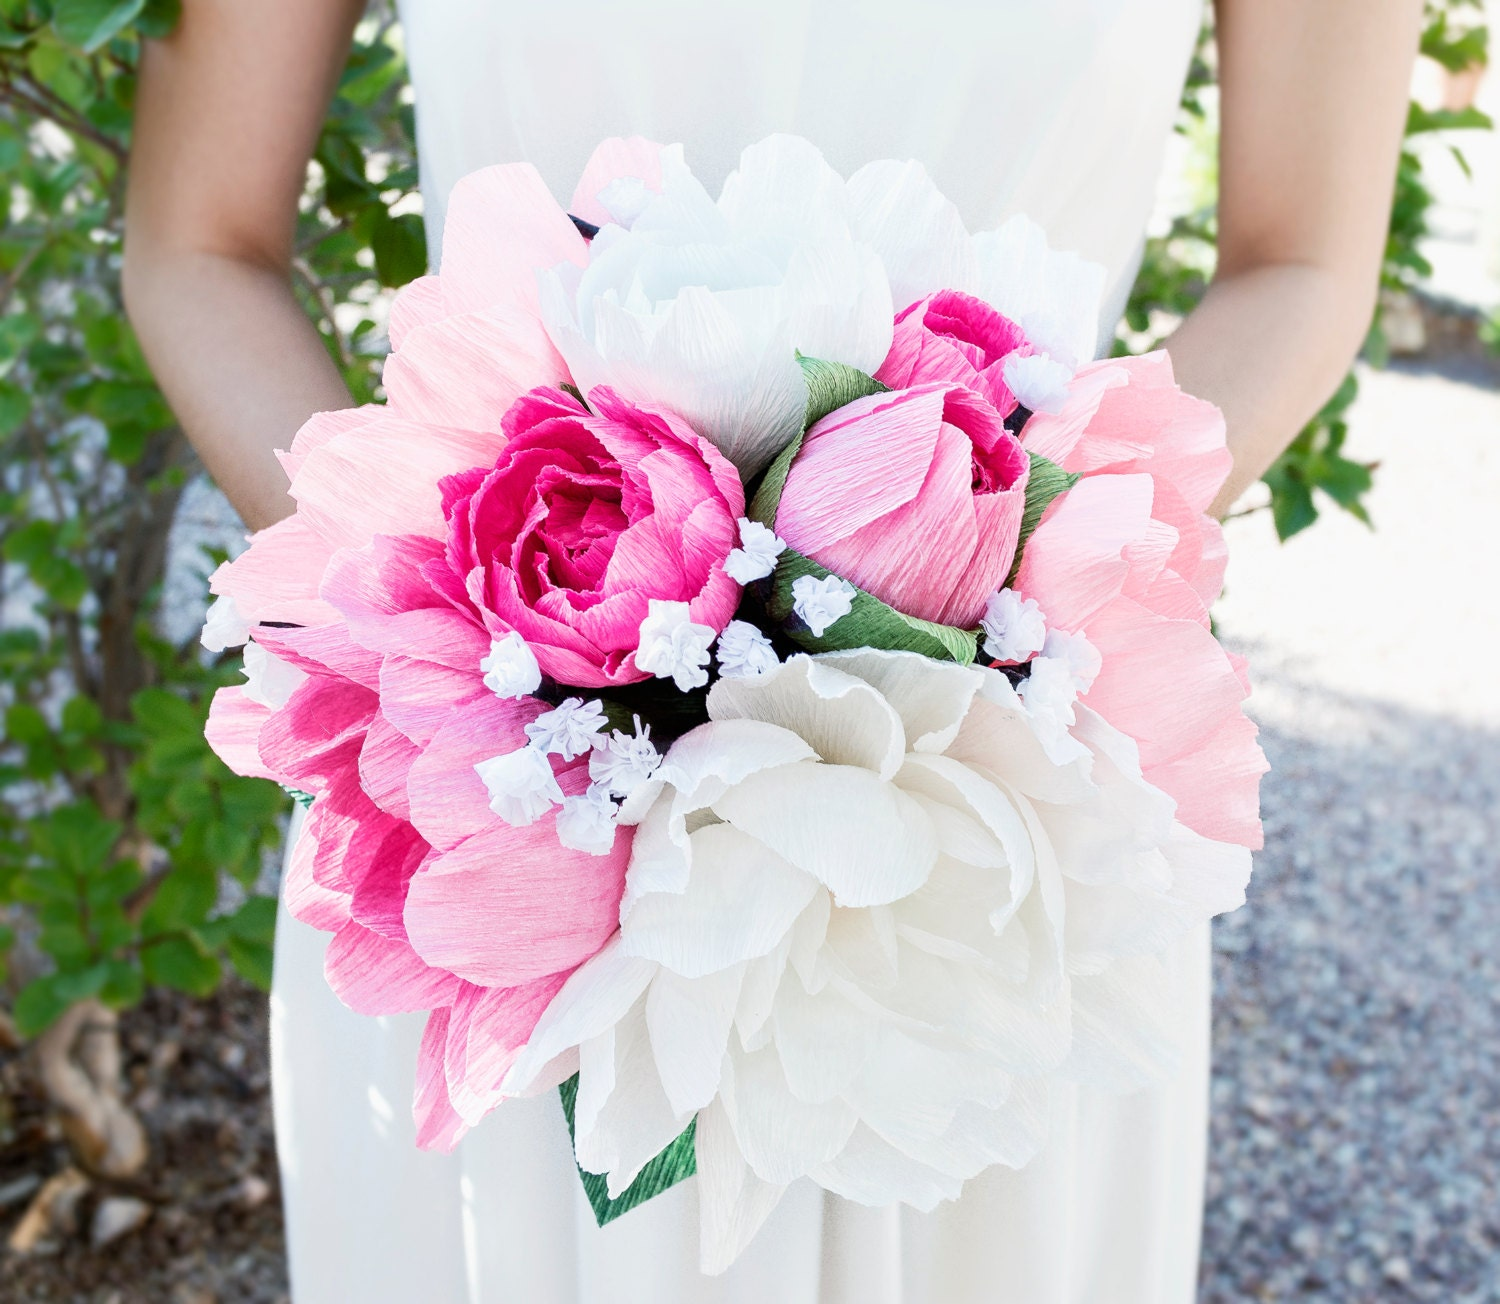 Handmade Crepe Paper Flower Bouquet Paper Flowers Wedding